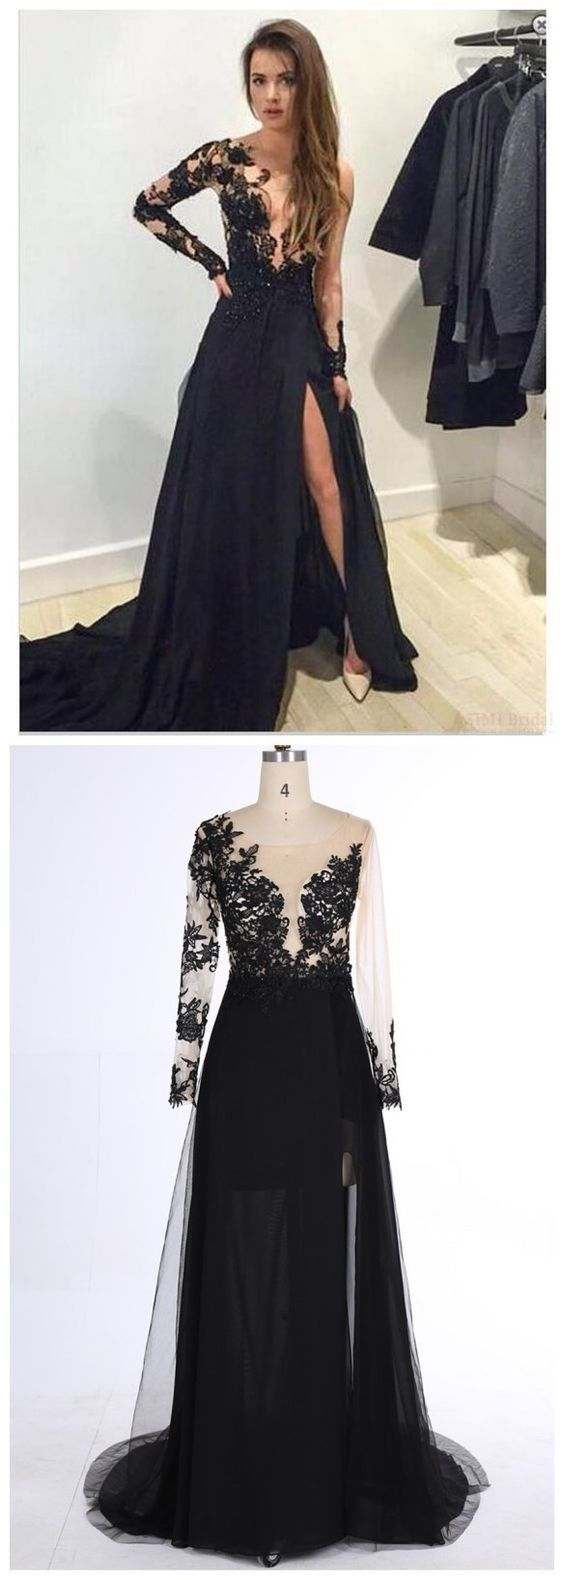 New style black long sleeves prom dresses lace deep v neck thigh